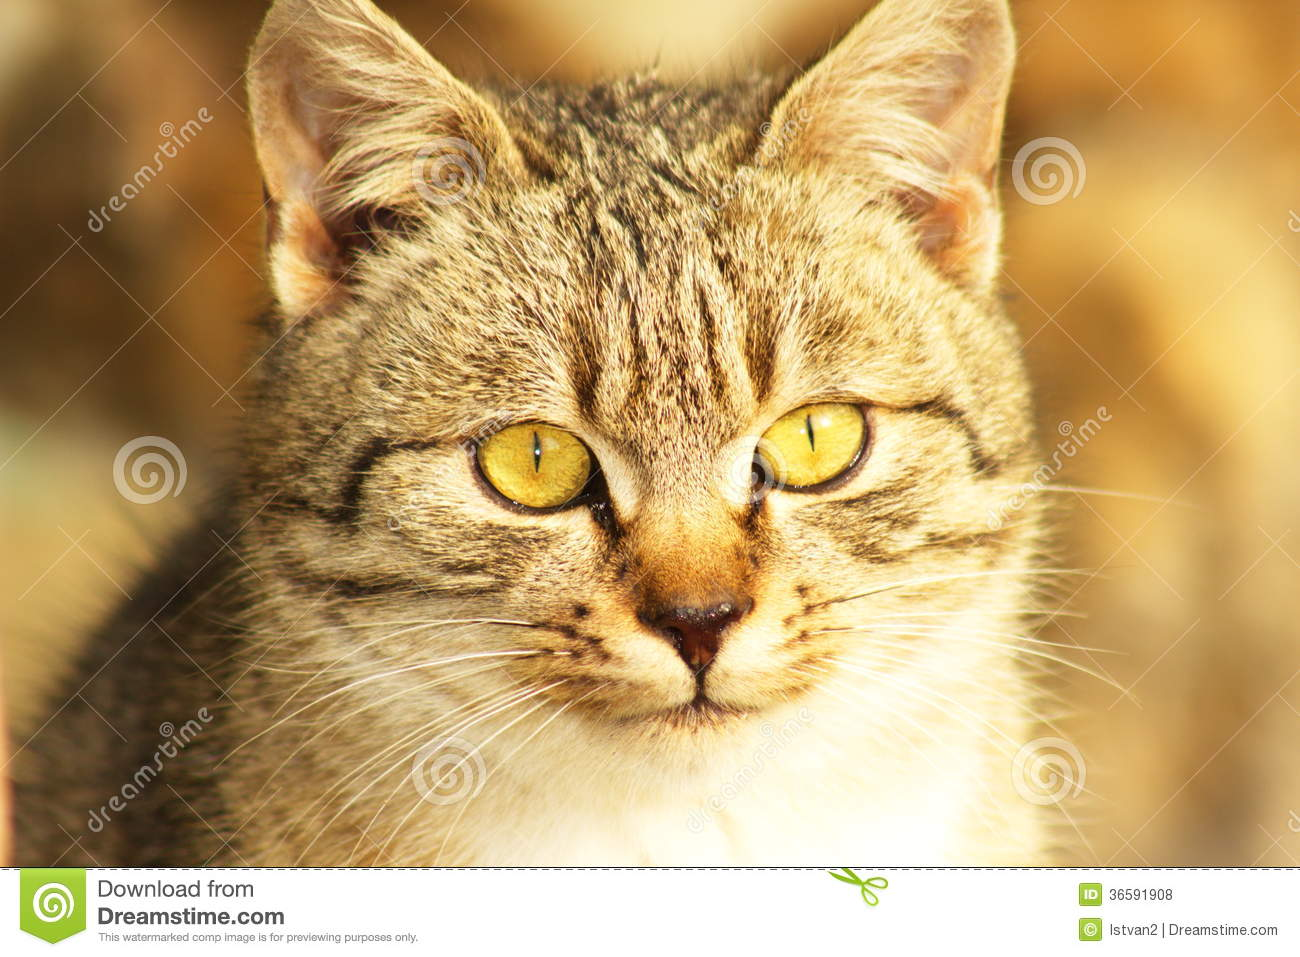 an overview of the small carnivorous animal felis catus The cat (felis silvestris catus), also known as the domestic cat or housecat to distinguish it from other felines and felids, is a small carnivorous mammal that is.